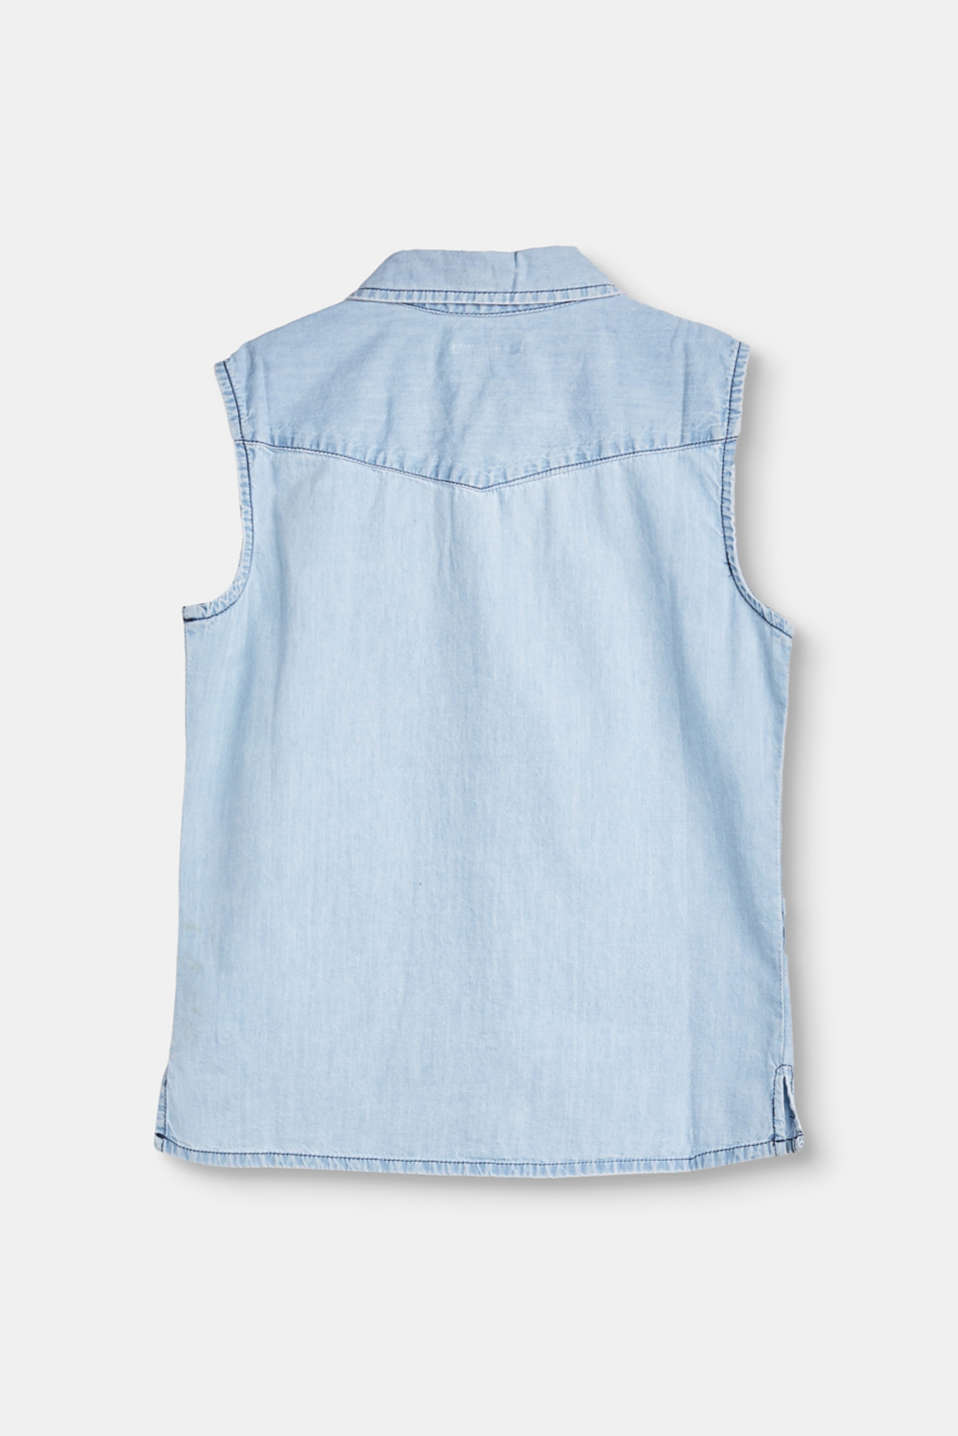 Denim blouse in 100% cotton